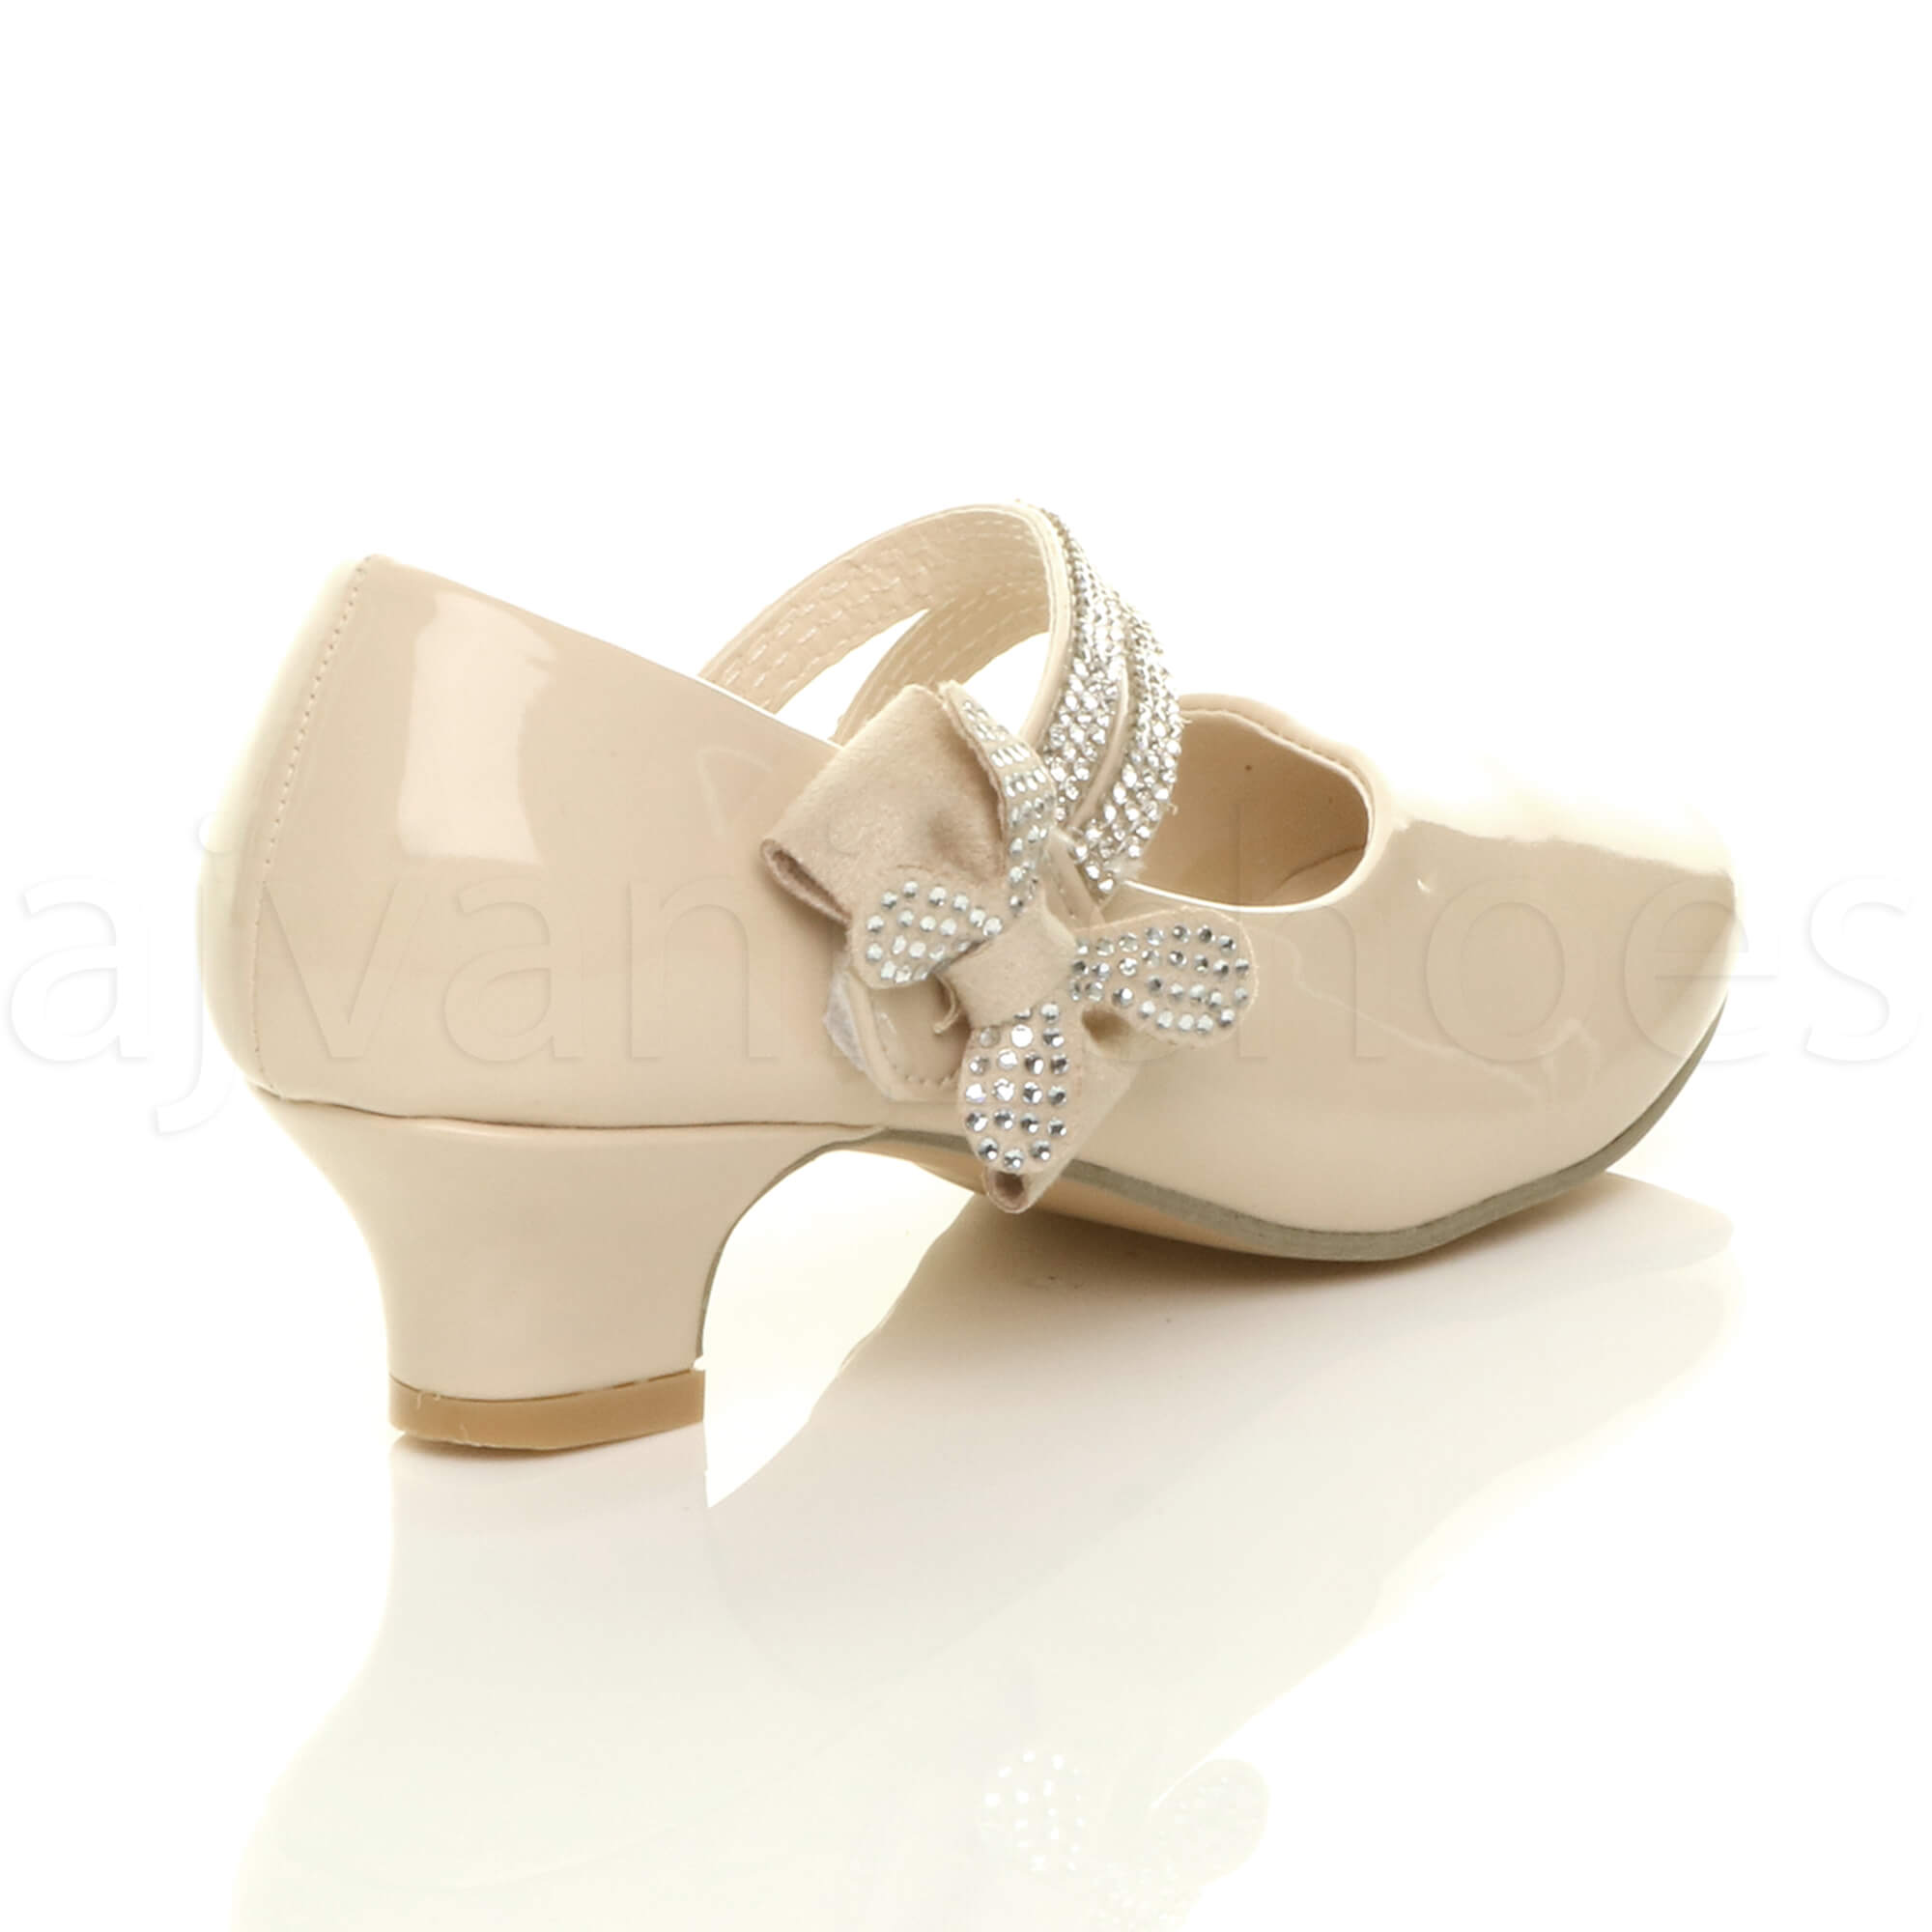 4050689a2425 GIRLS KIDS CHILDRENS LOW HEEL STRAP BOW BRIDESMAID PARTY FORMAL ...